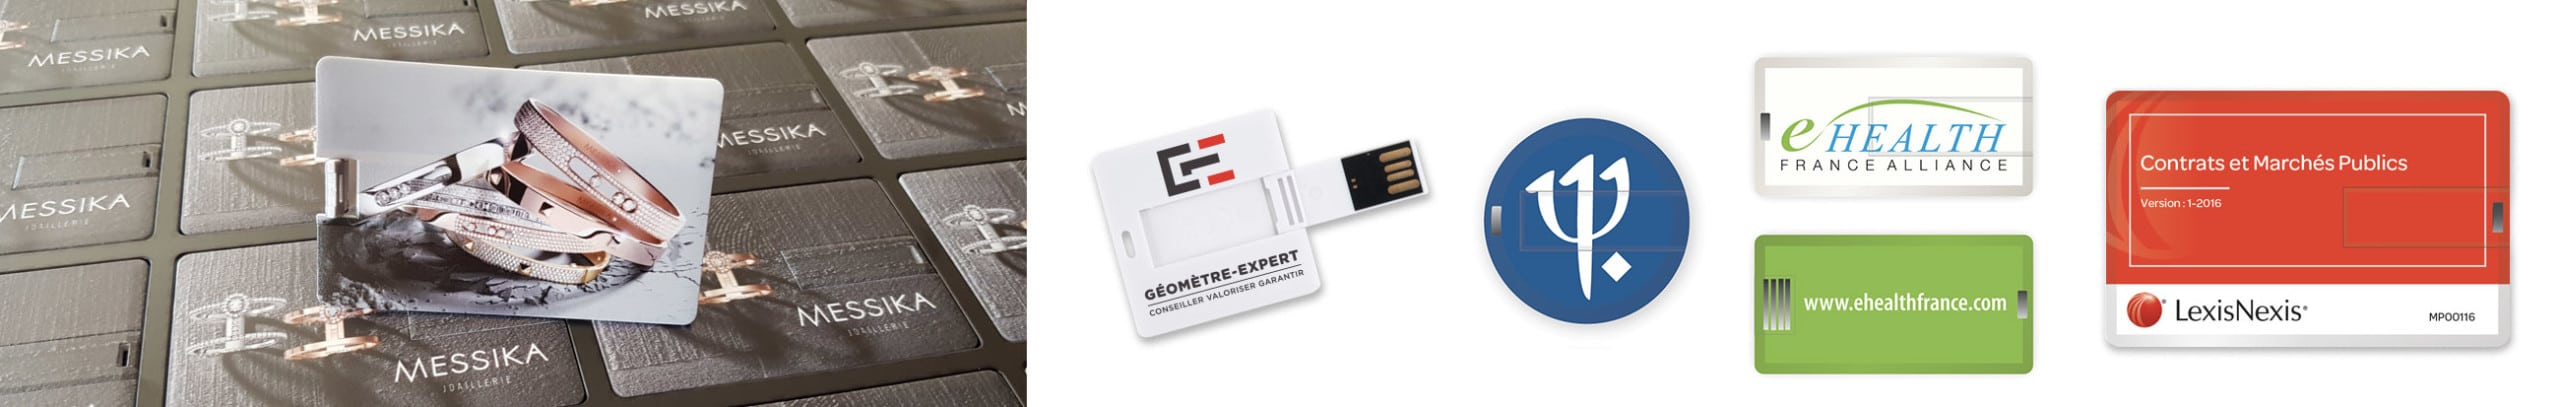 Ensemble De Cls Cartes Visite USB